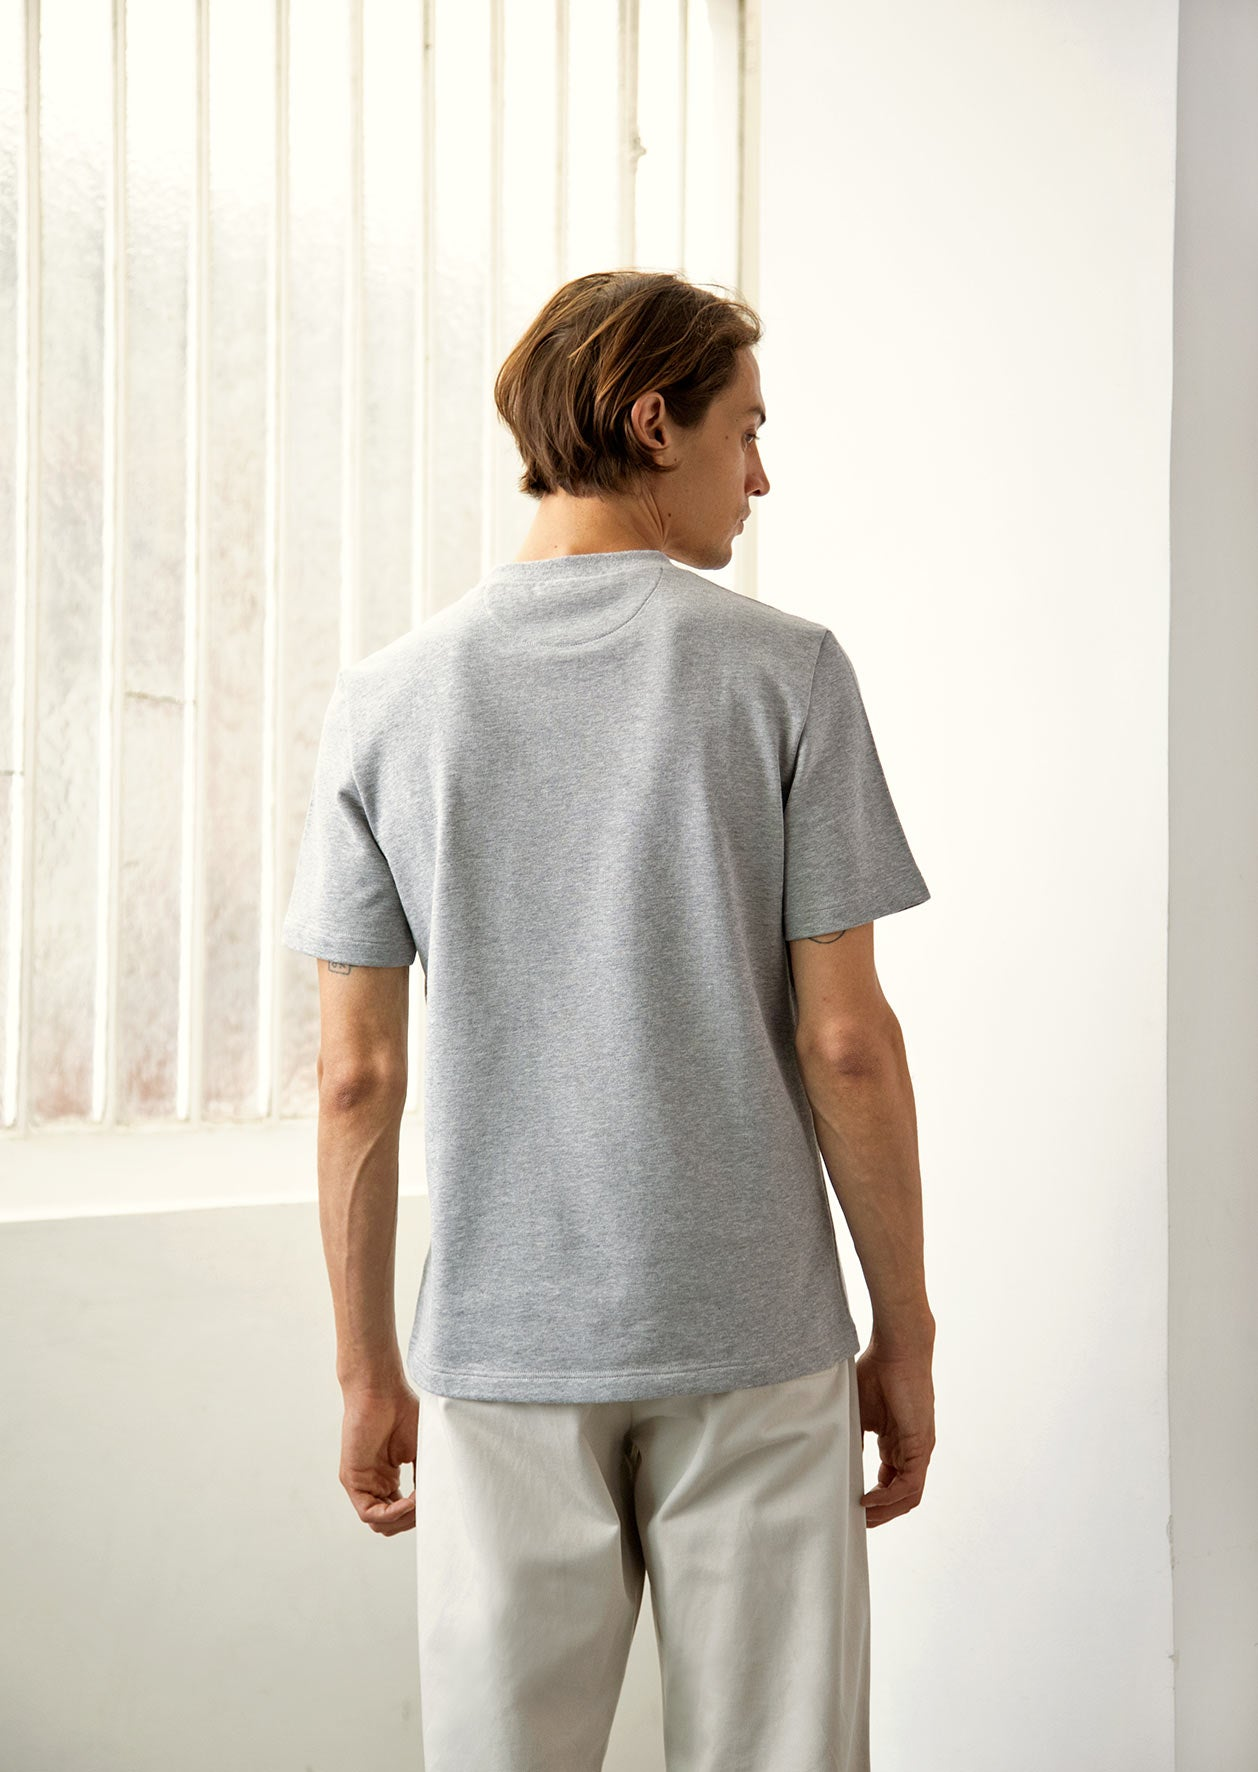 De Bonne Facture - Pocket t-shirt - Organic cotton jersey - Heathered grey